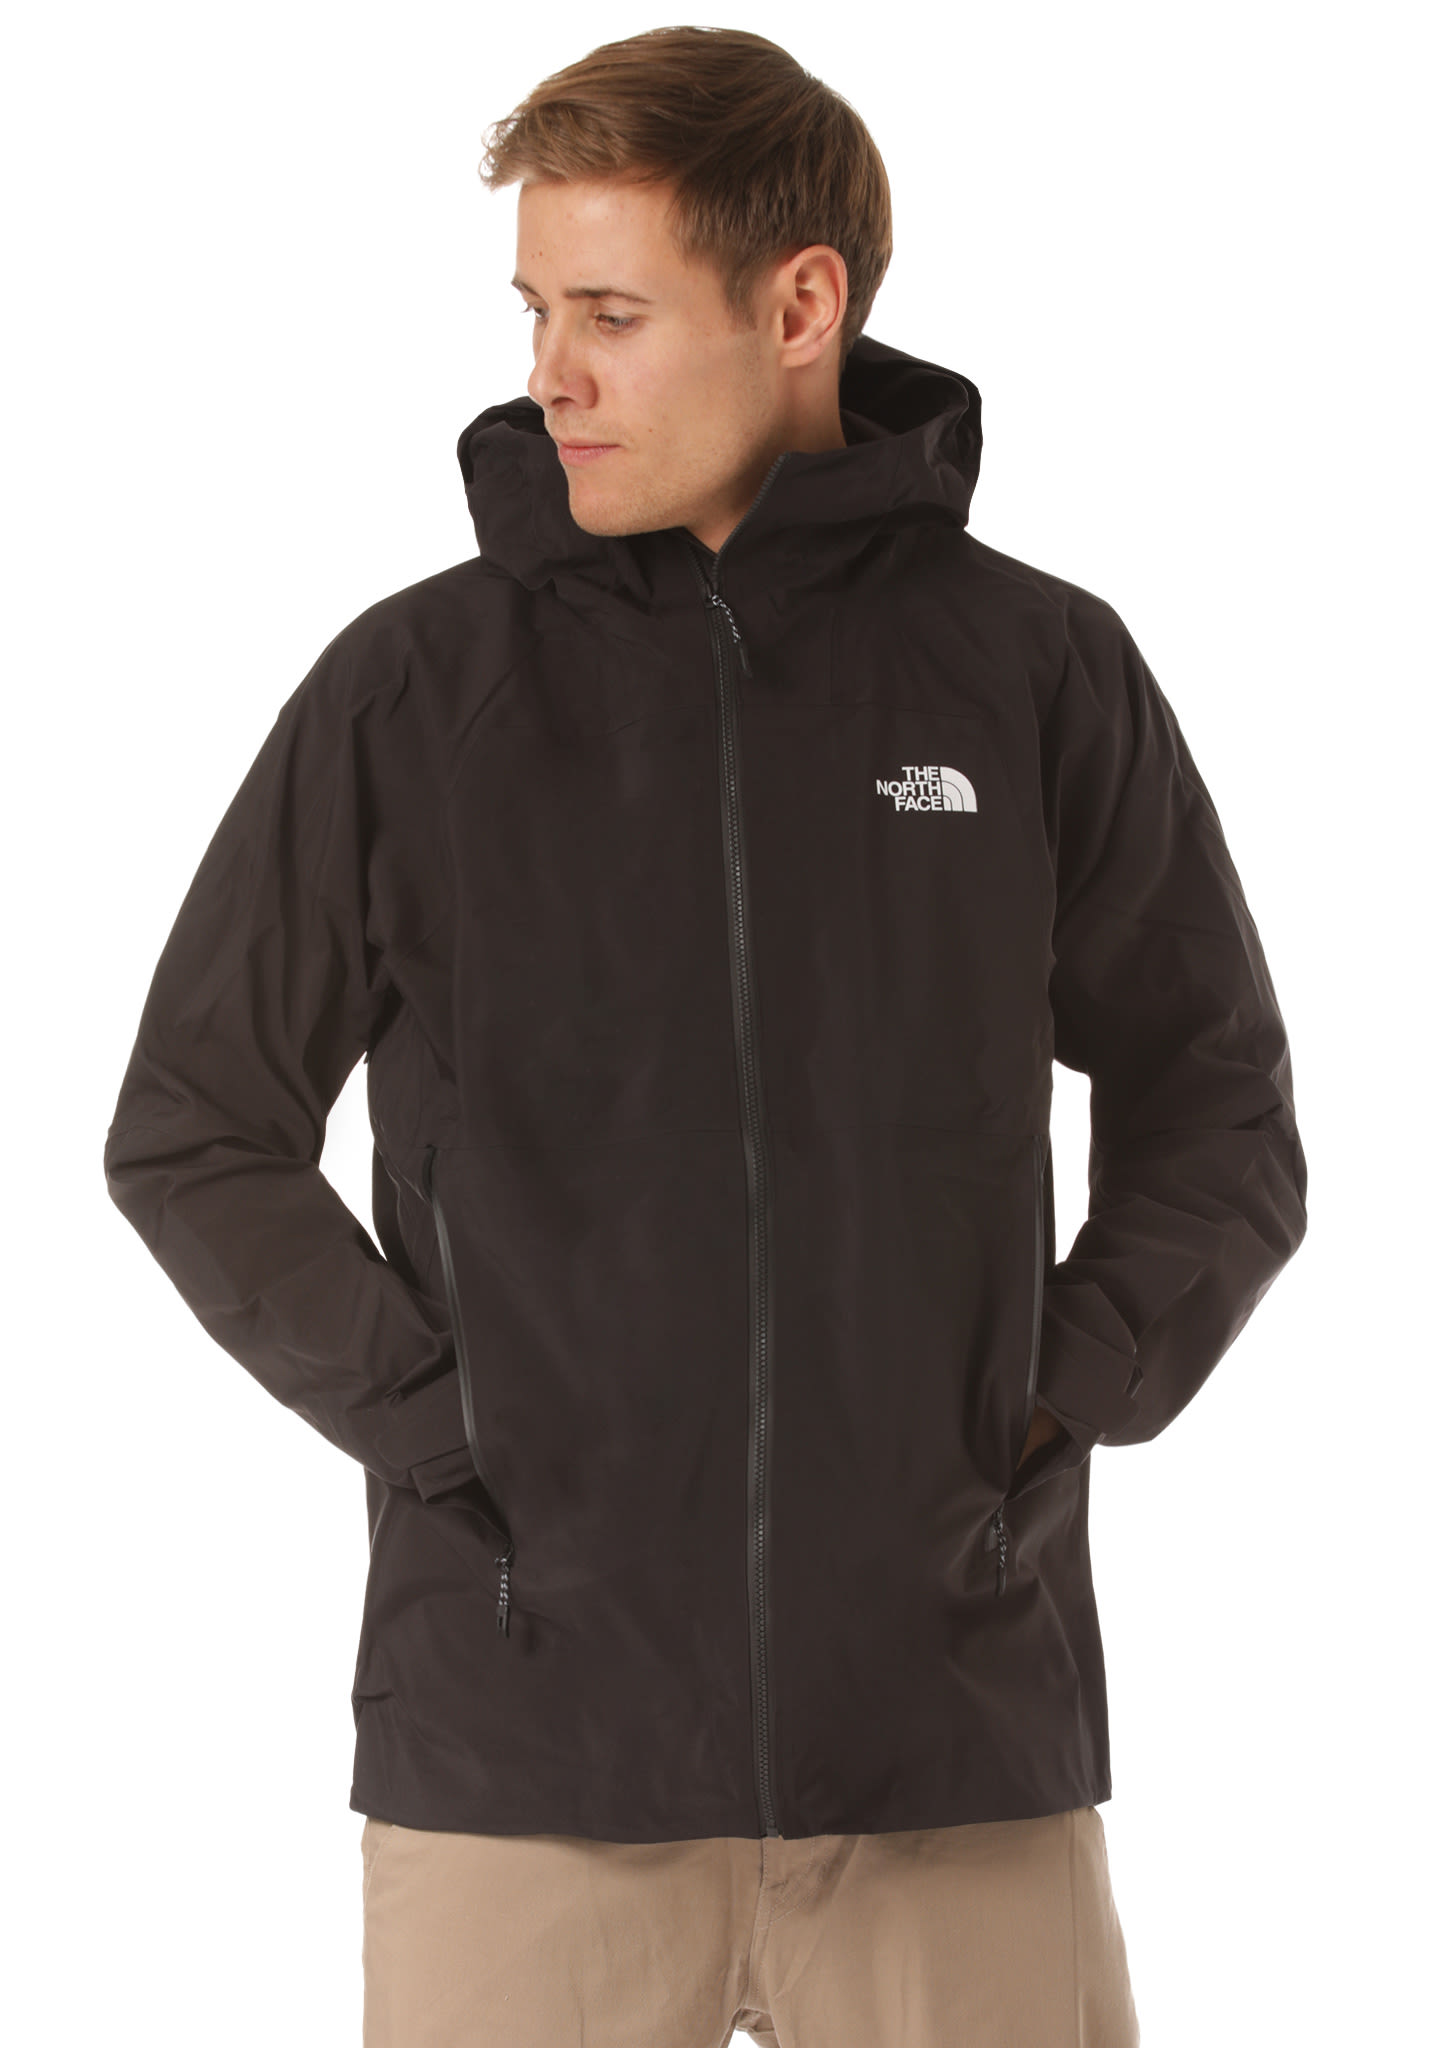 b6518e7c3 THE NORTH FACE Impendor Shell - Outdoor Jacket for Men - Black